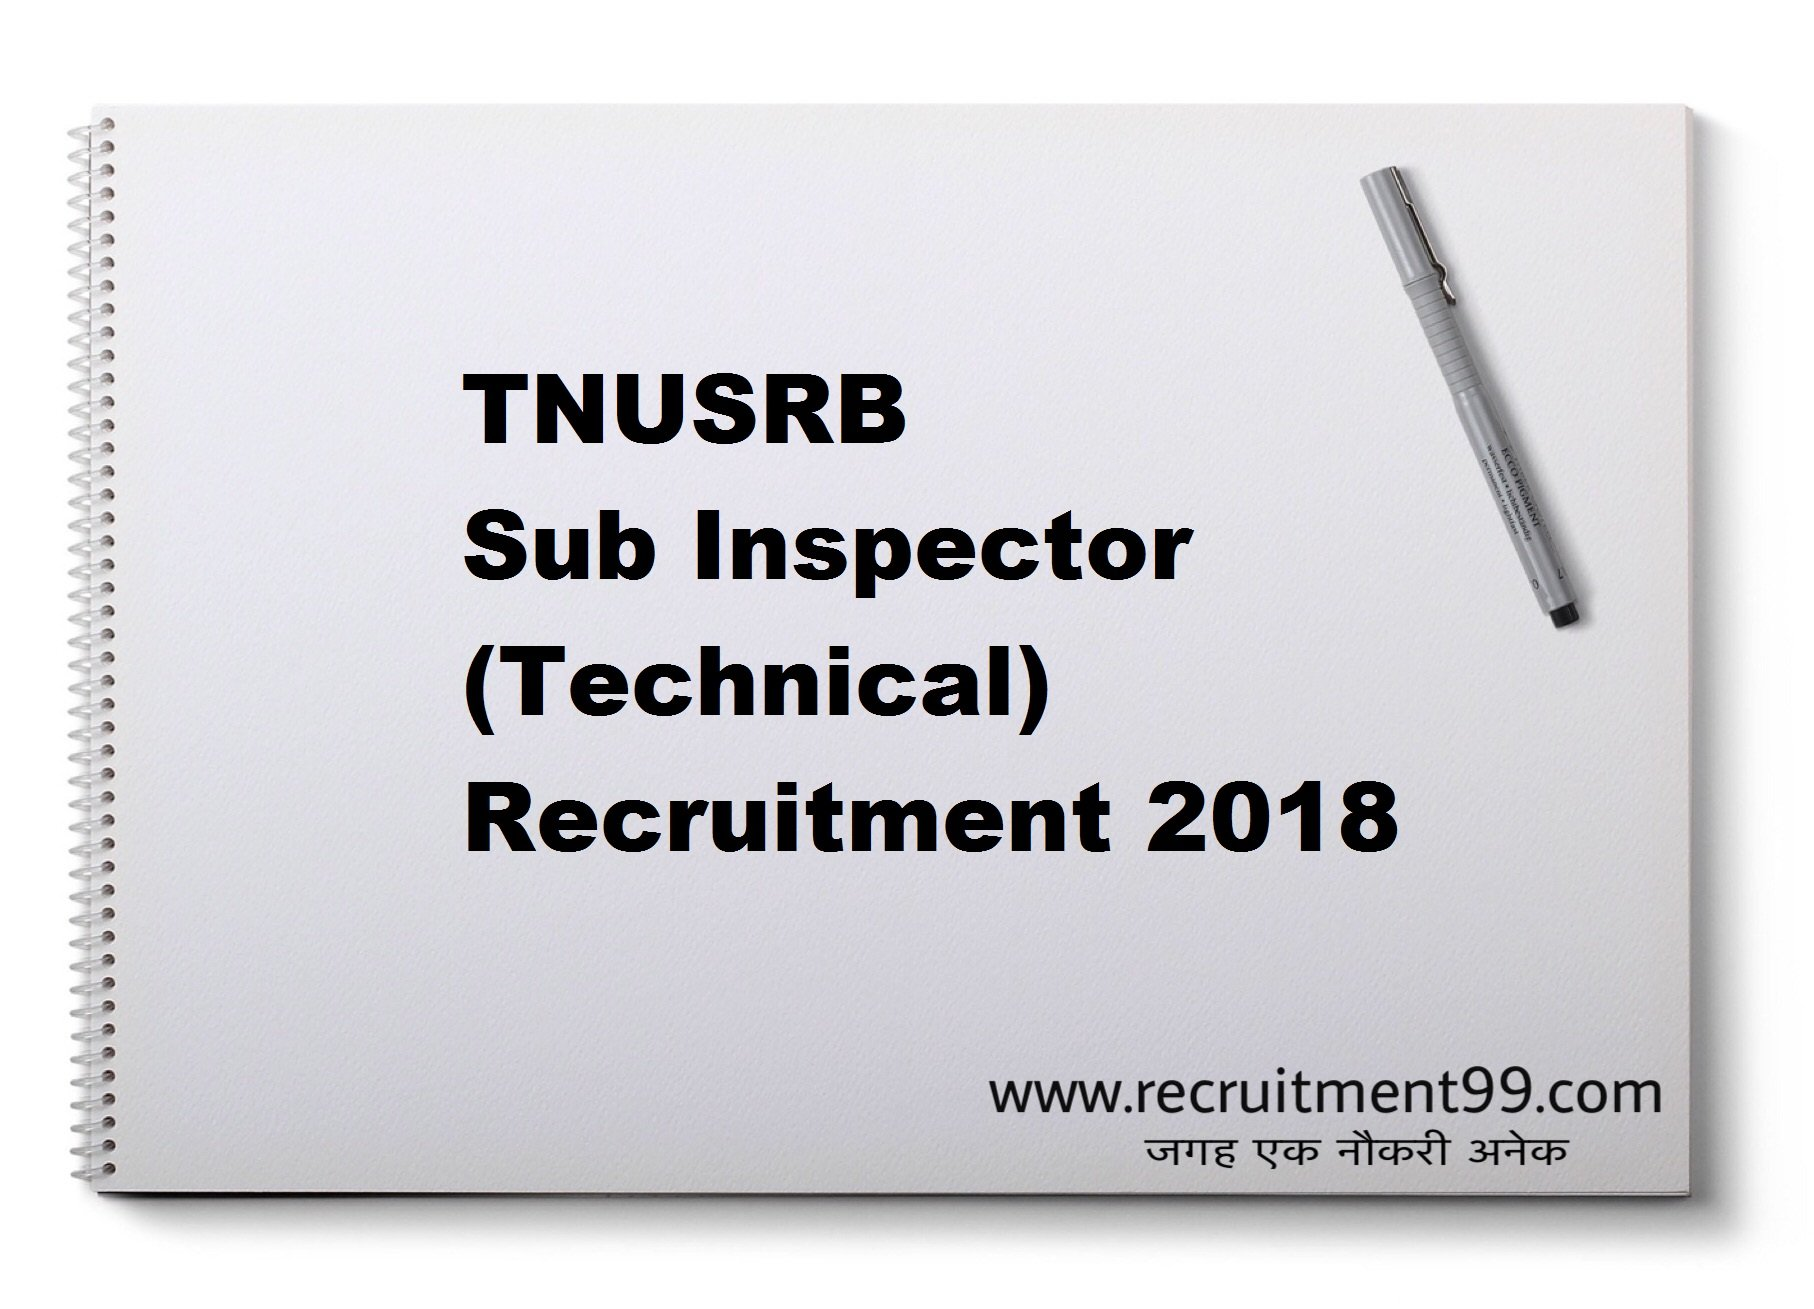 TNUSRB Sub Inspector (Technical) Recruitment Hall ticket Result 2018